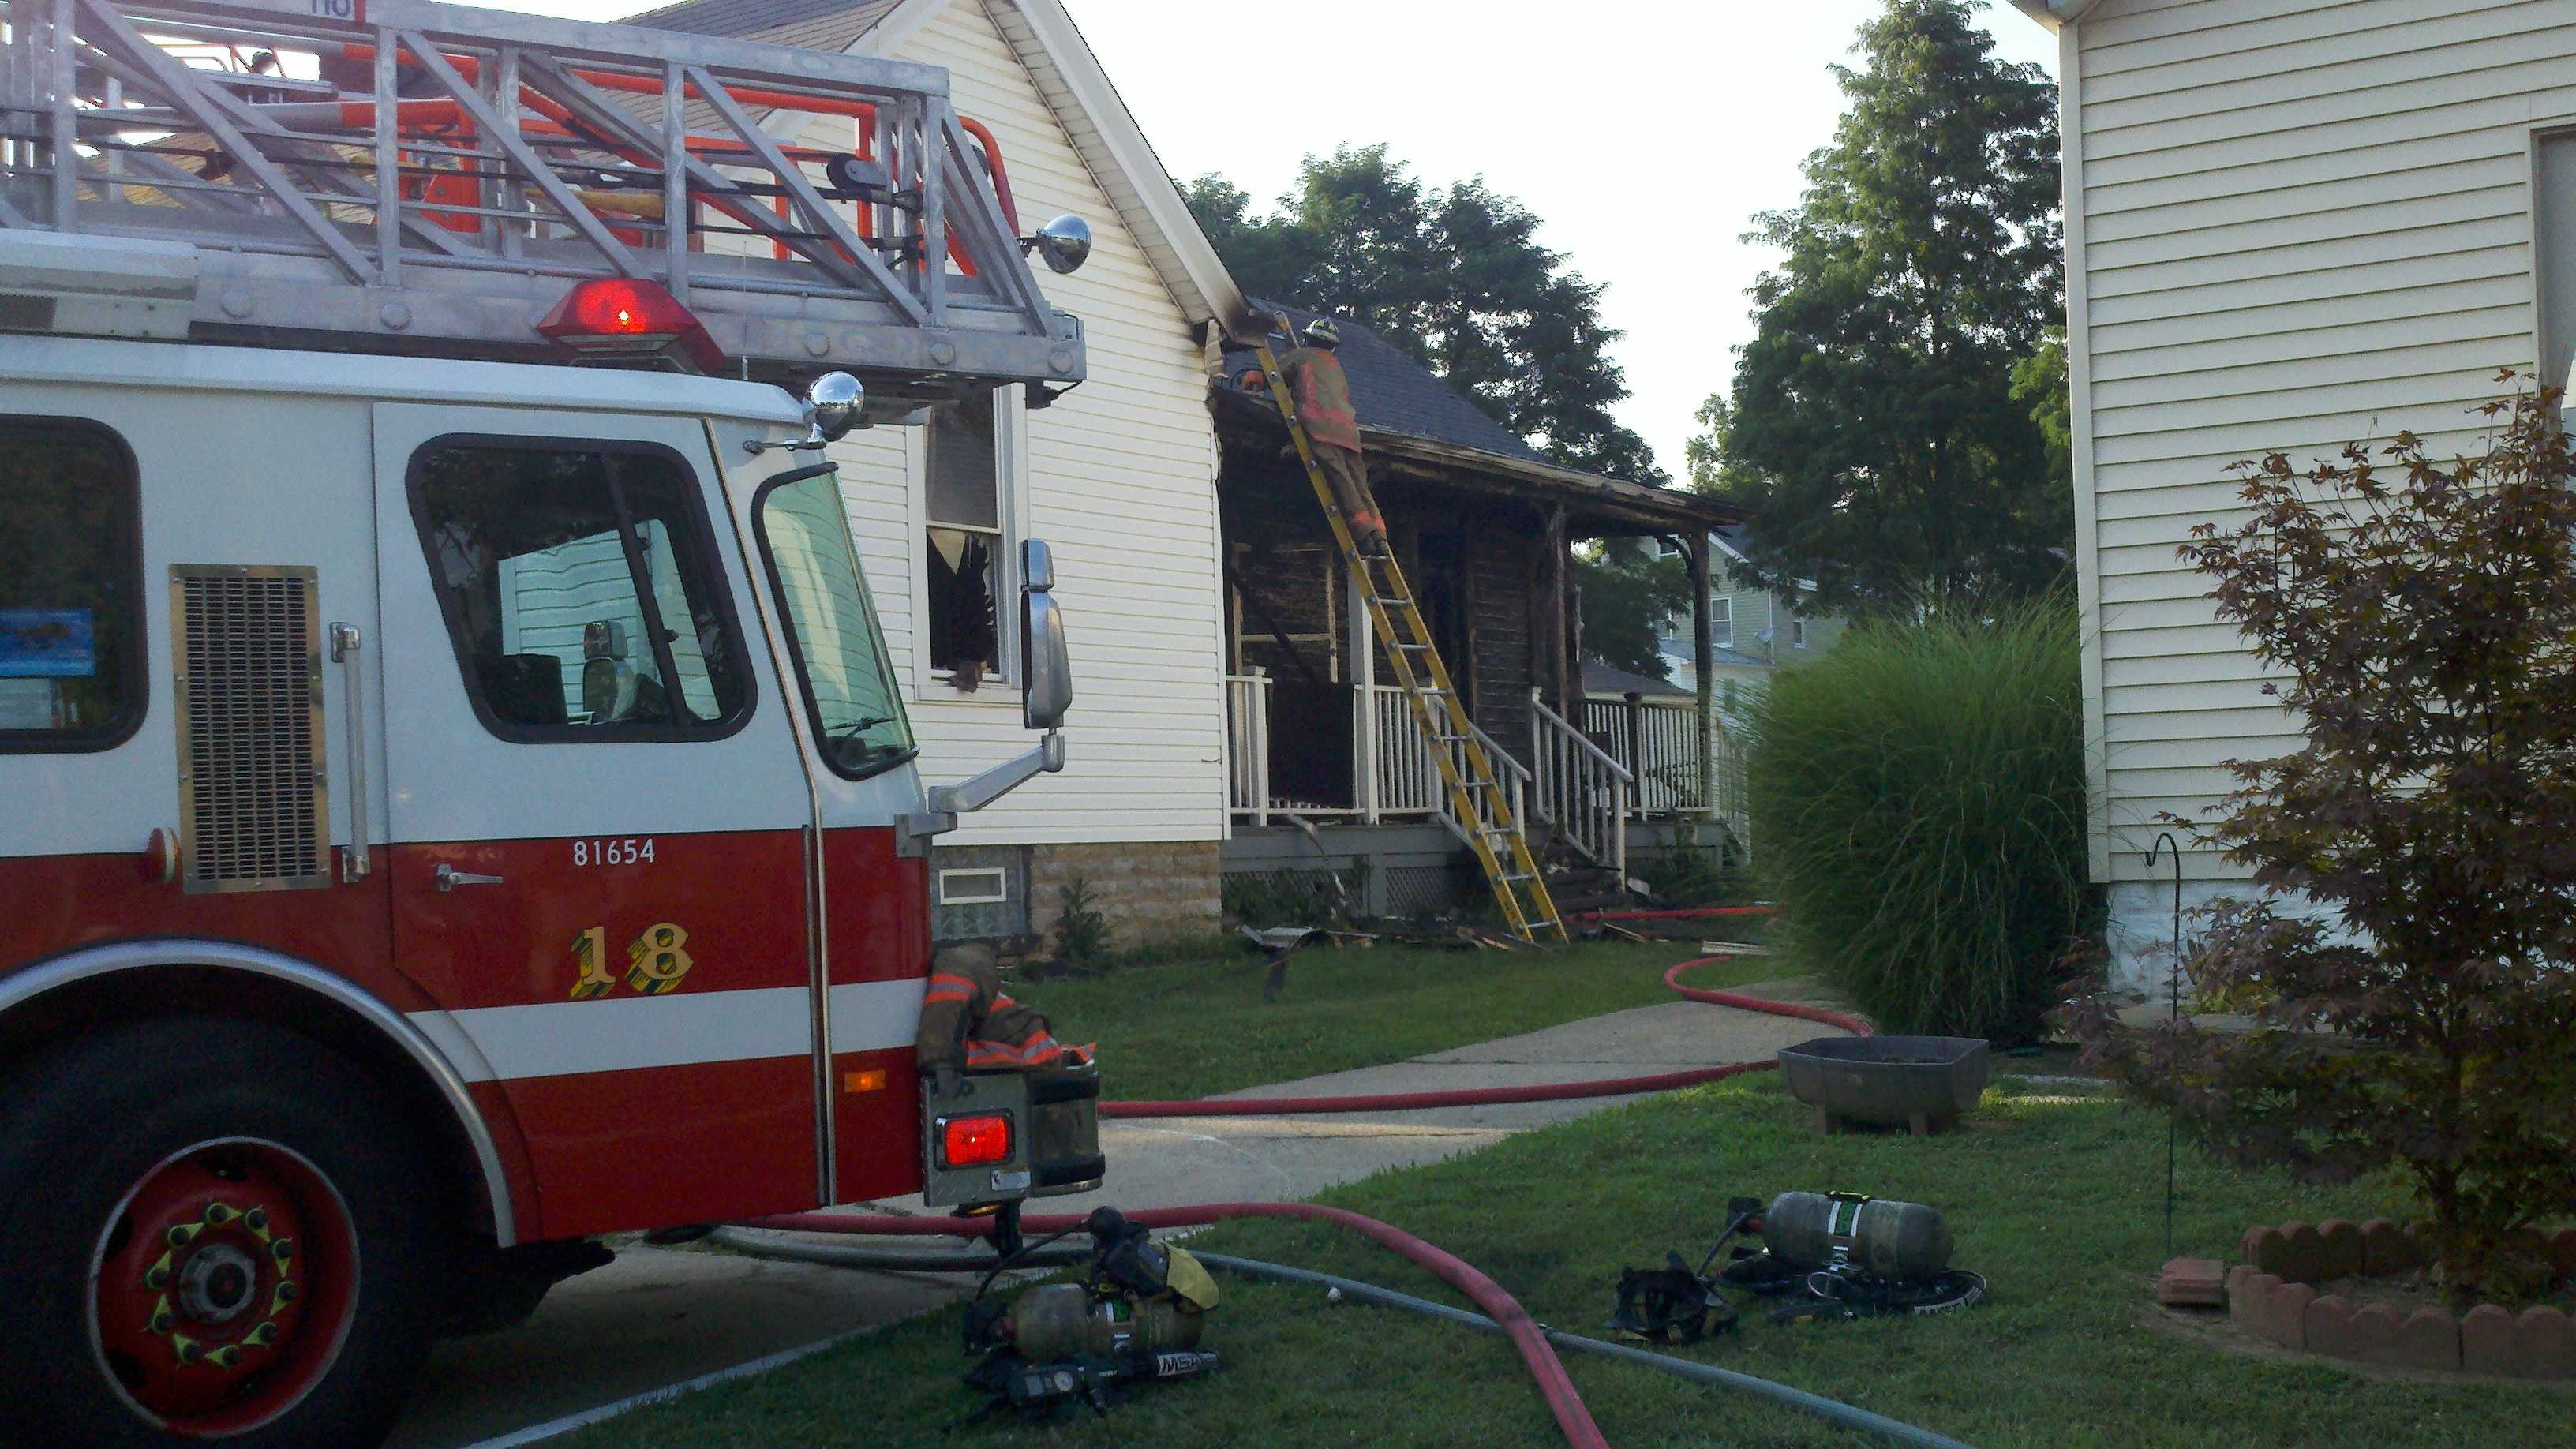 Fire crews say an unattended kitchen fire is to blame for a 2-alarm fire in Madisonville Monday evening.